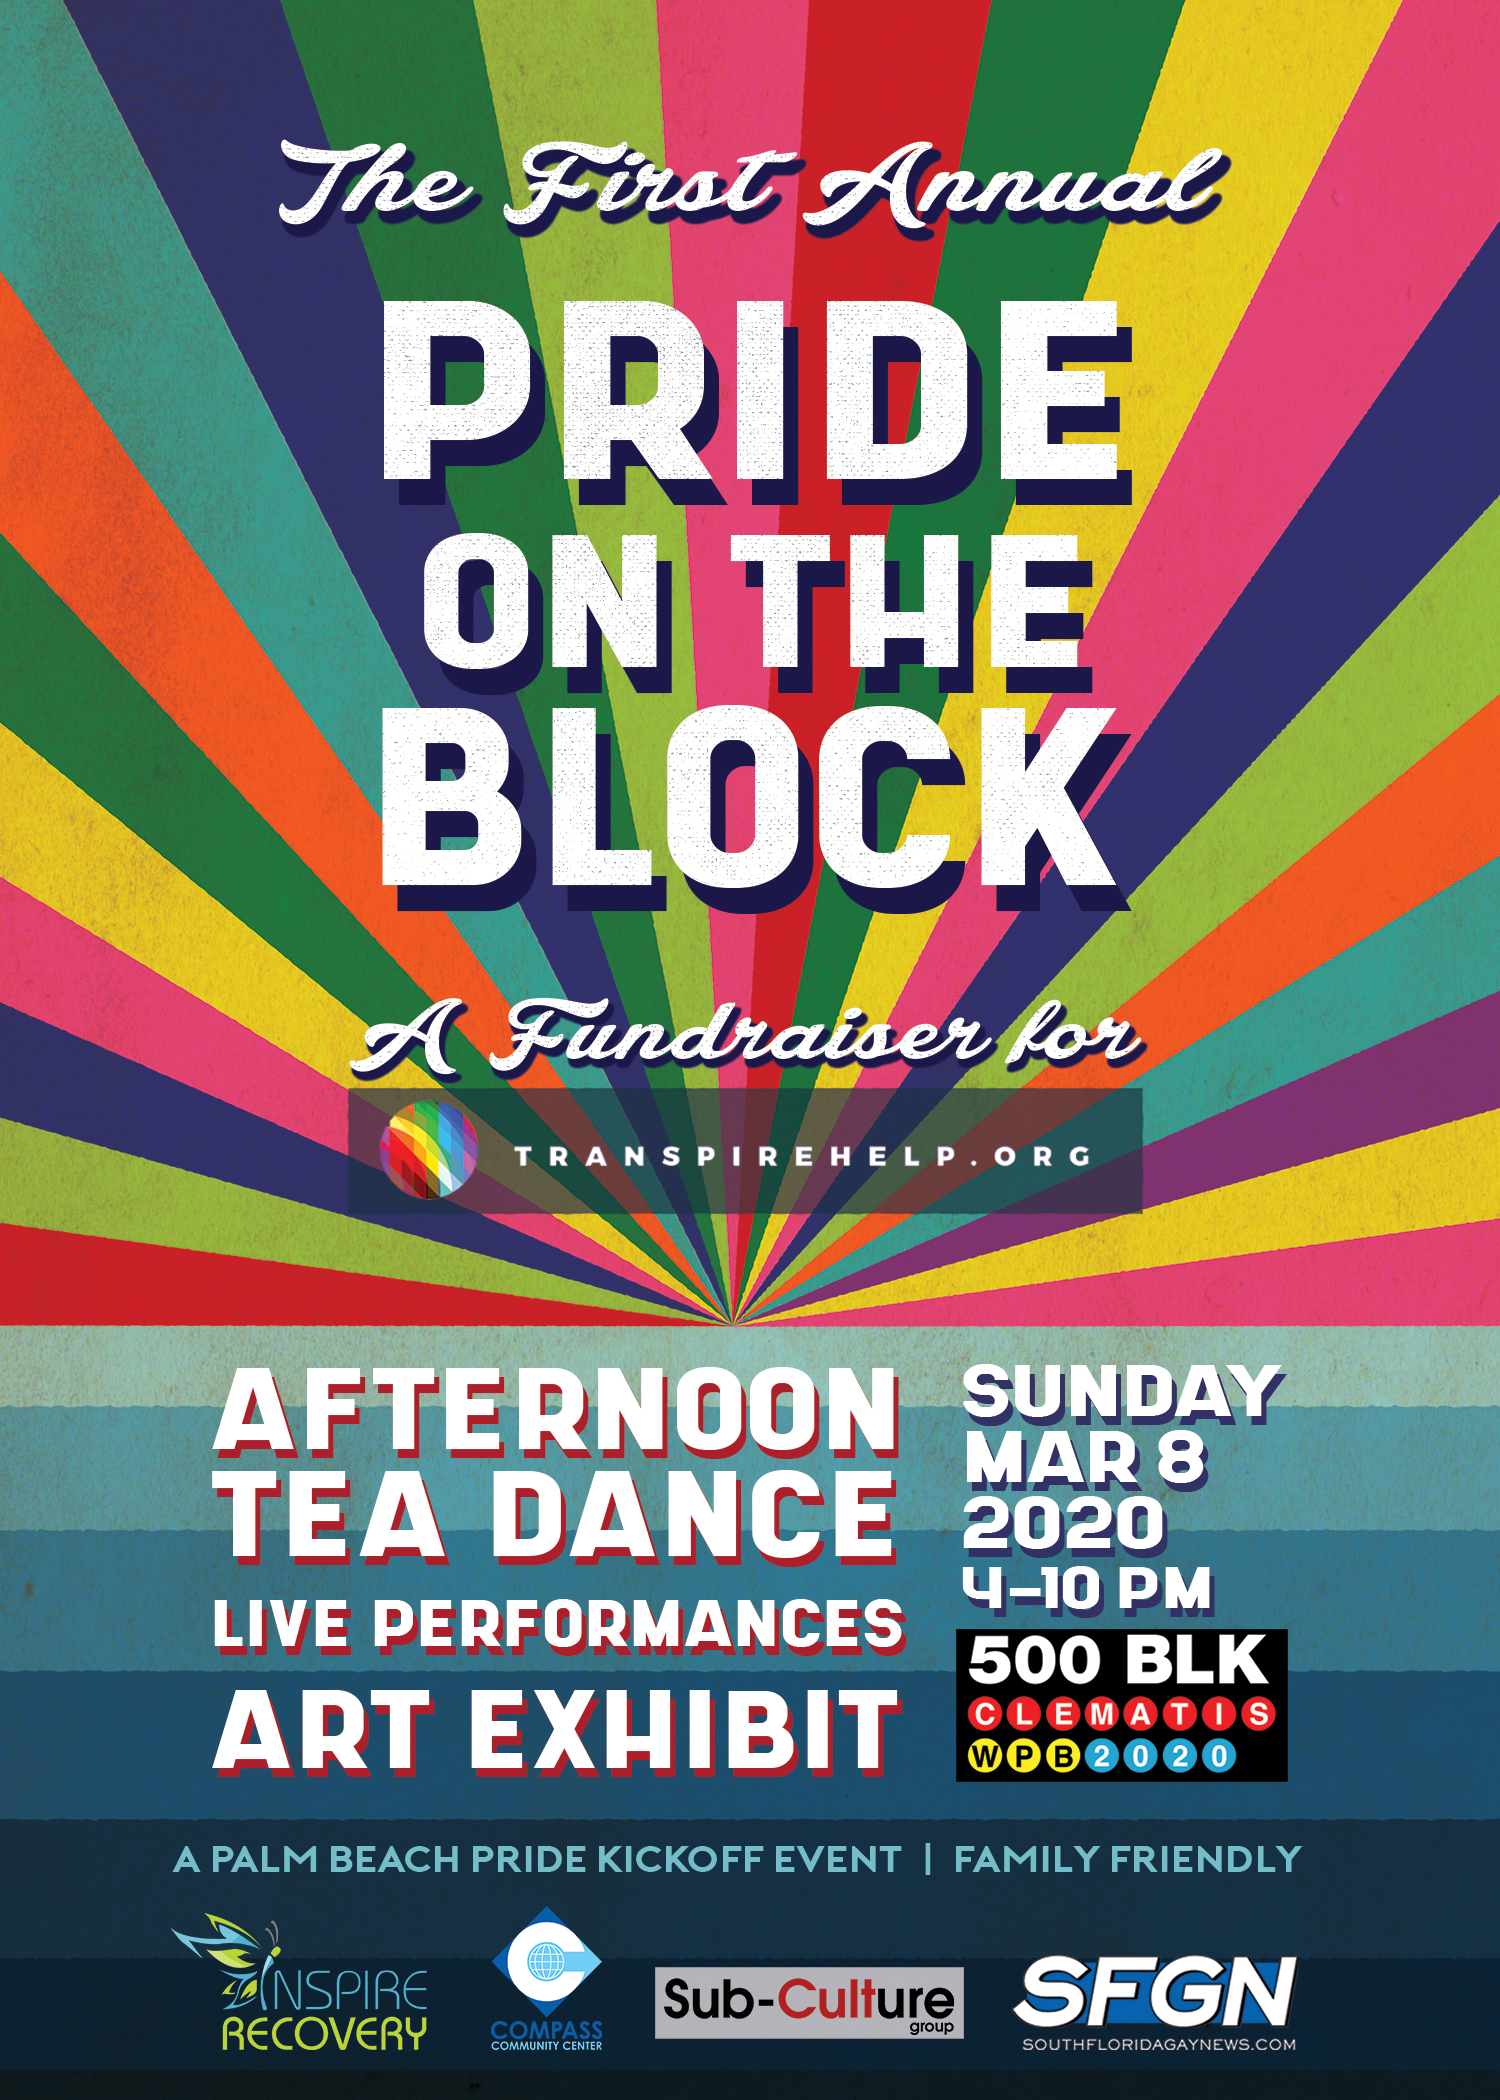 Transpire Help Fundraiser Pride on the Block 2020 Poster